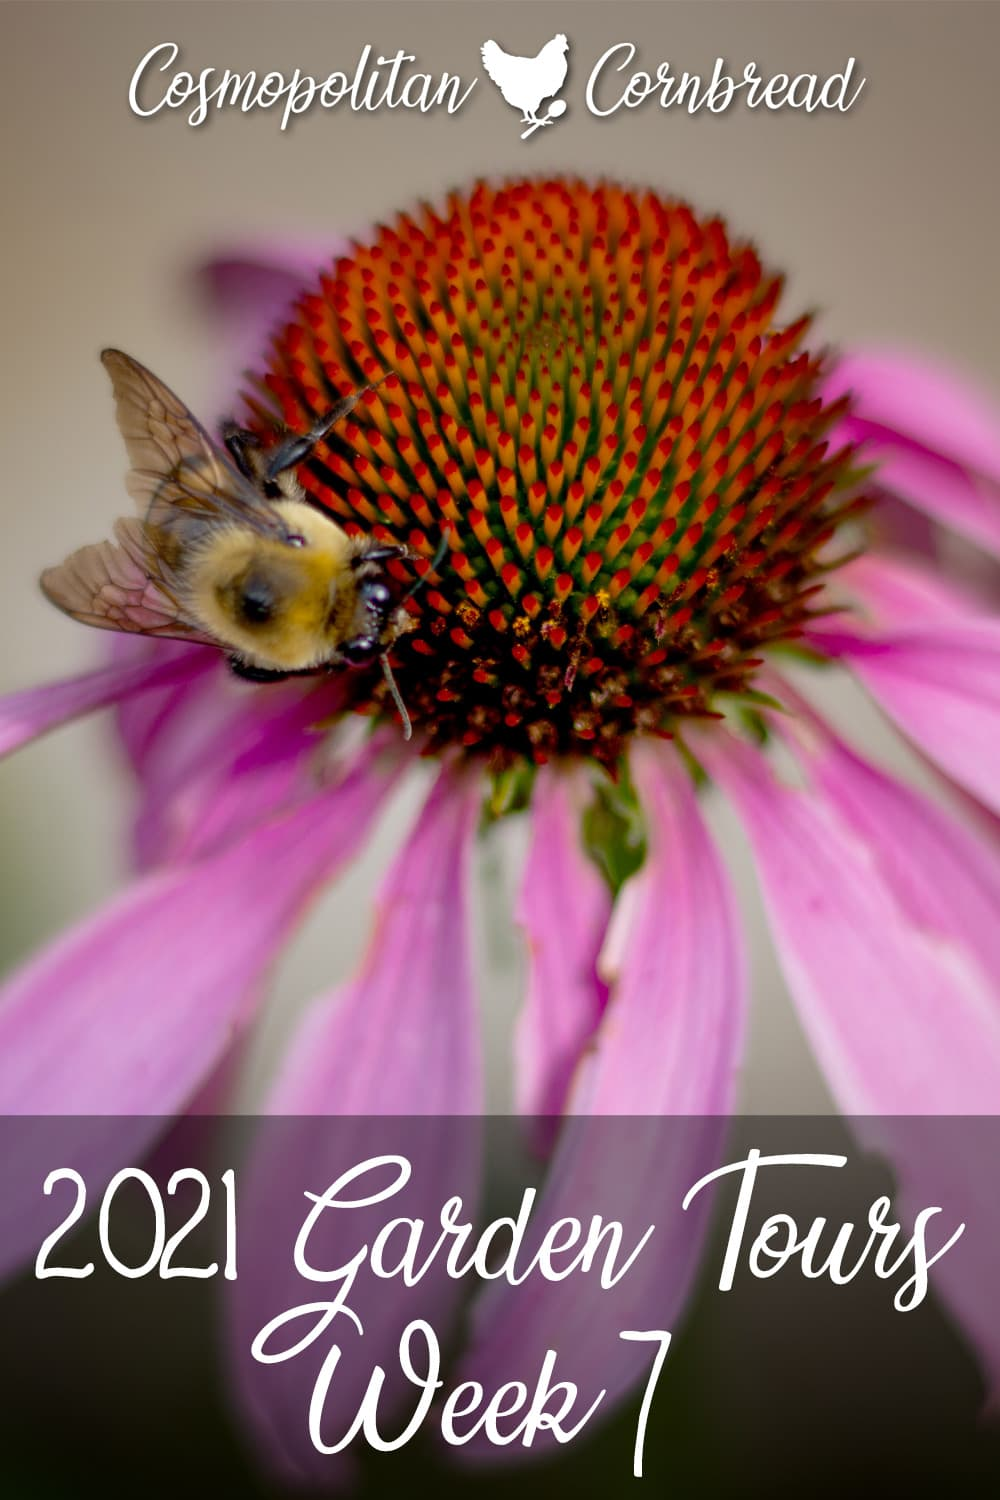 A lot has happened since the last garden tour. Come see how the gardens are growing.